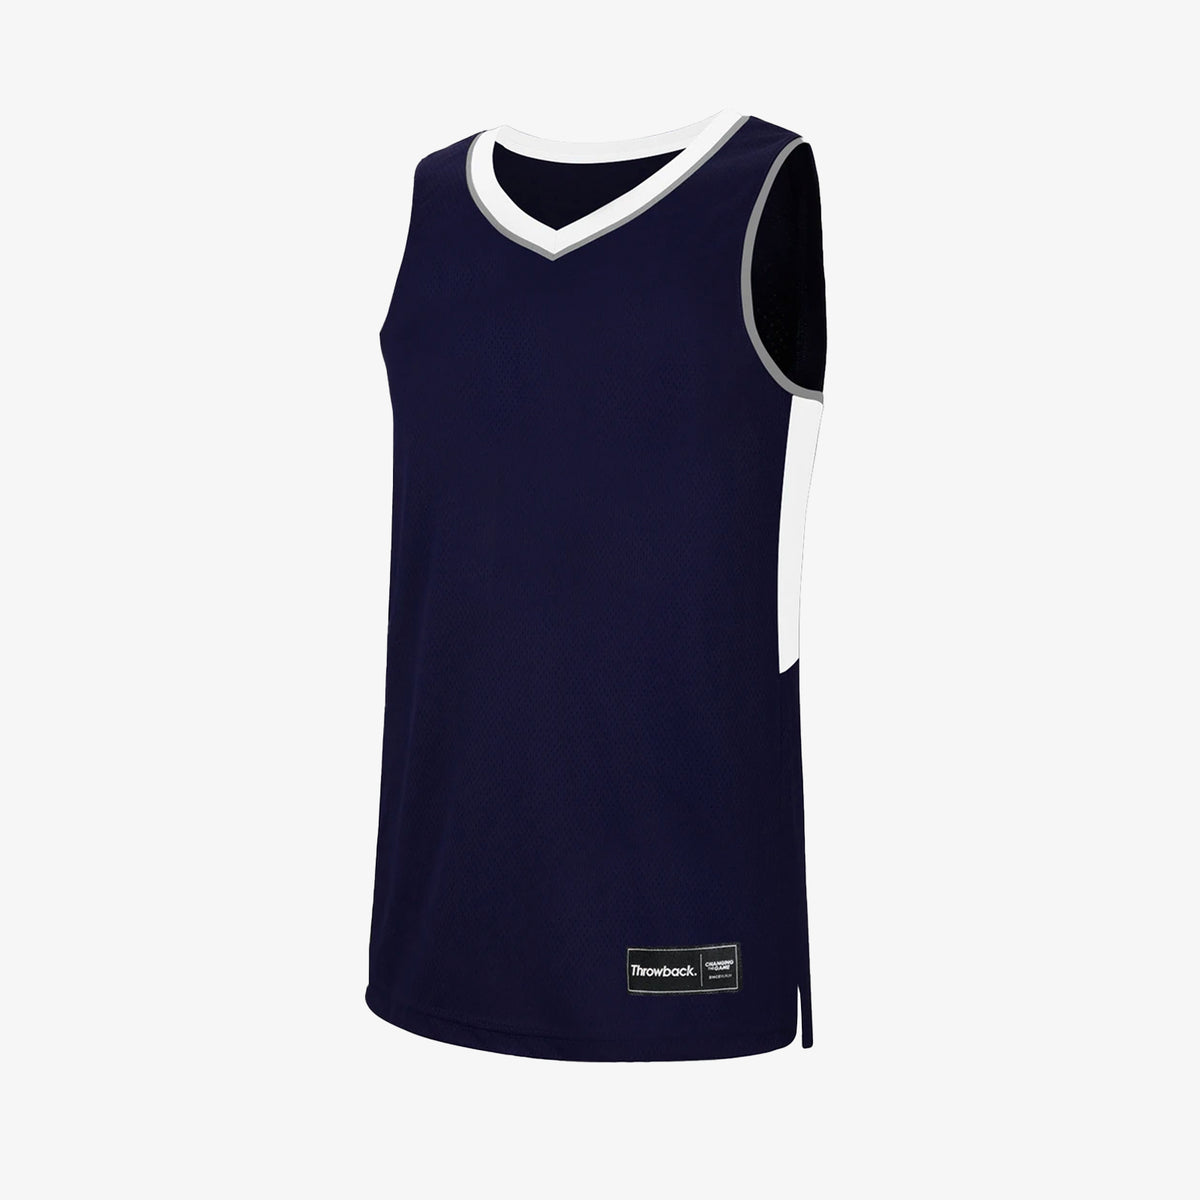 Throwback Oncourt Pro Jersey - Navy/White/Grey